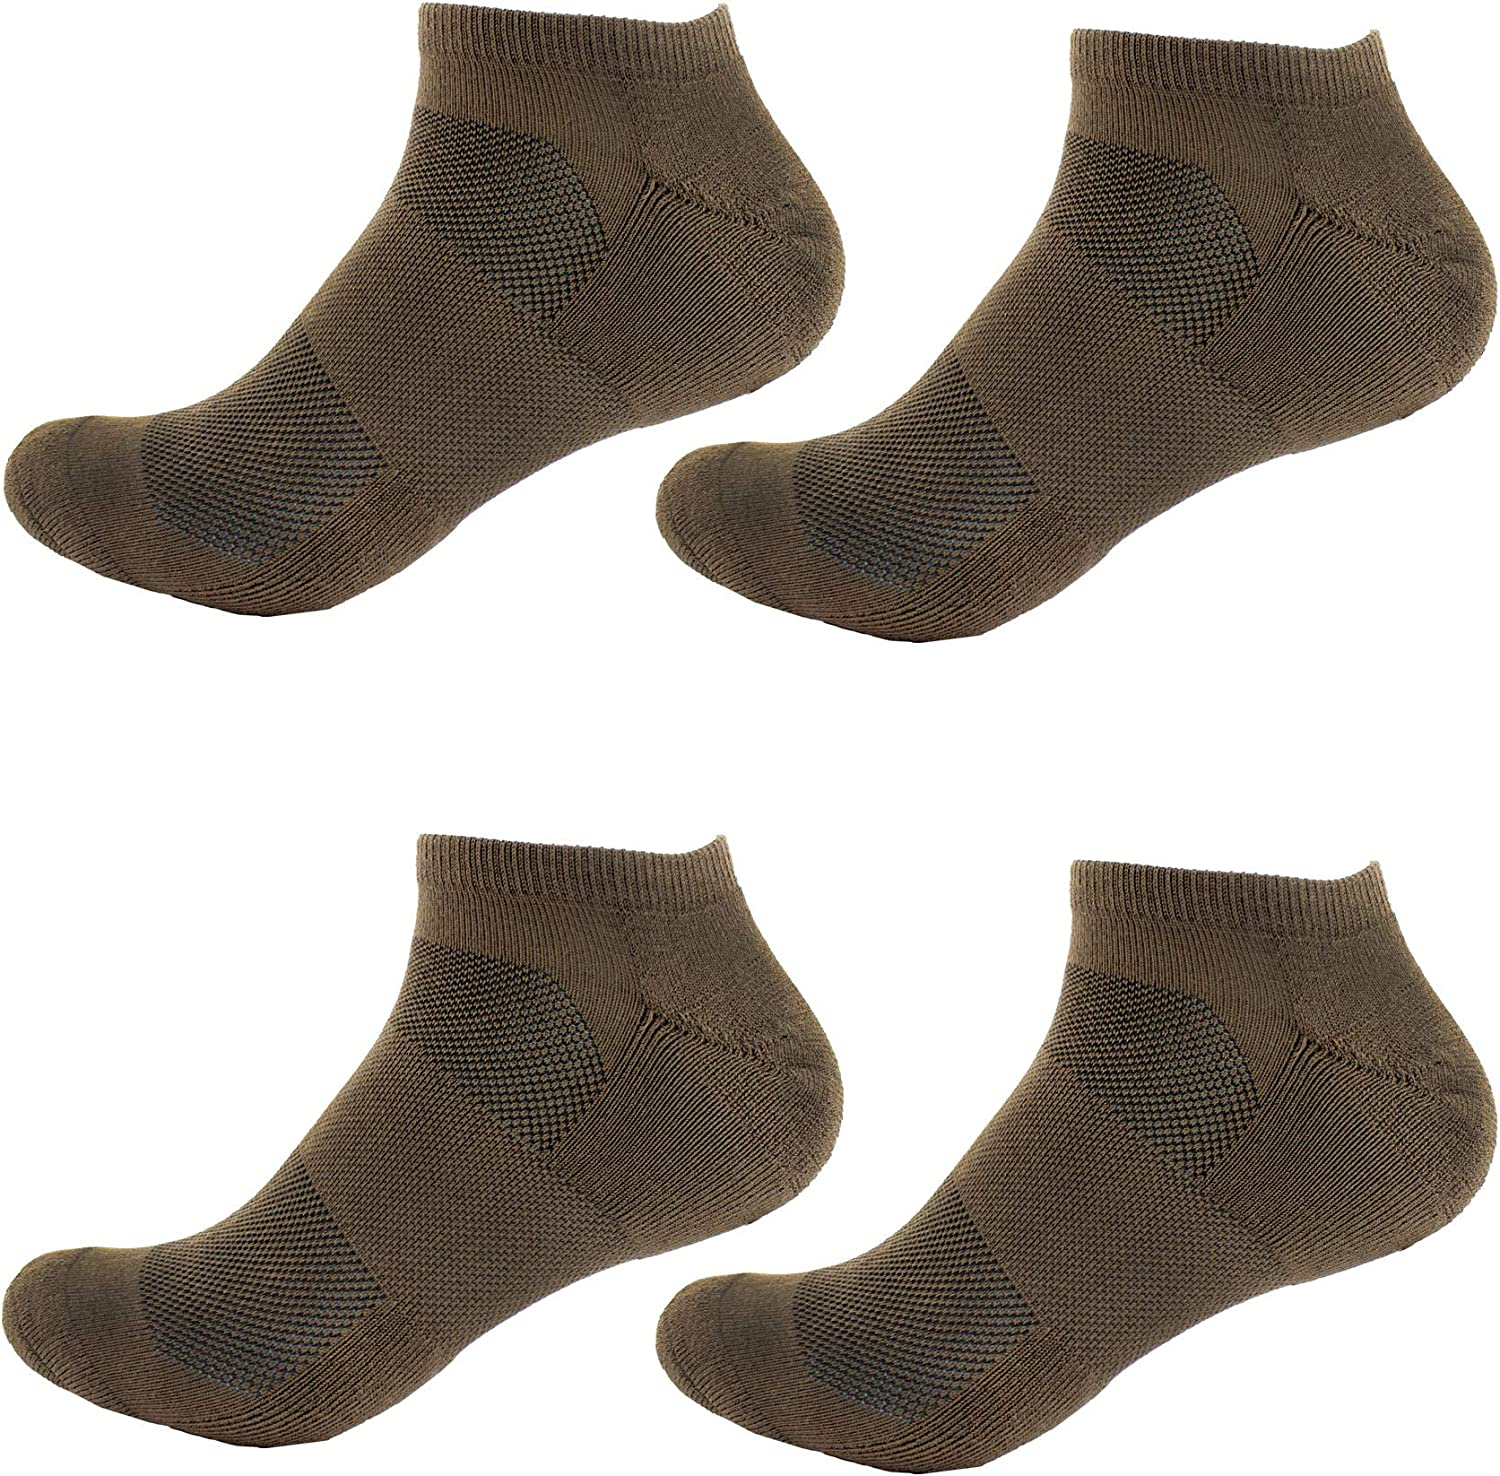 Men's Rayon from Bamboo Fiber Colored Sports Superior Wicking Athletic Ankle Socks - 4 Pair Value Pack at  Men's Clothing store